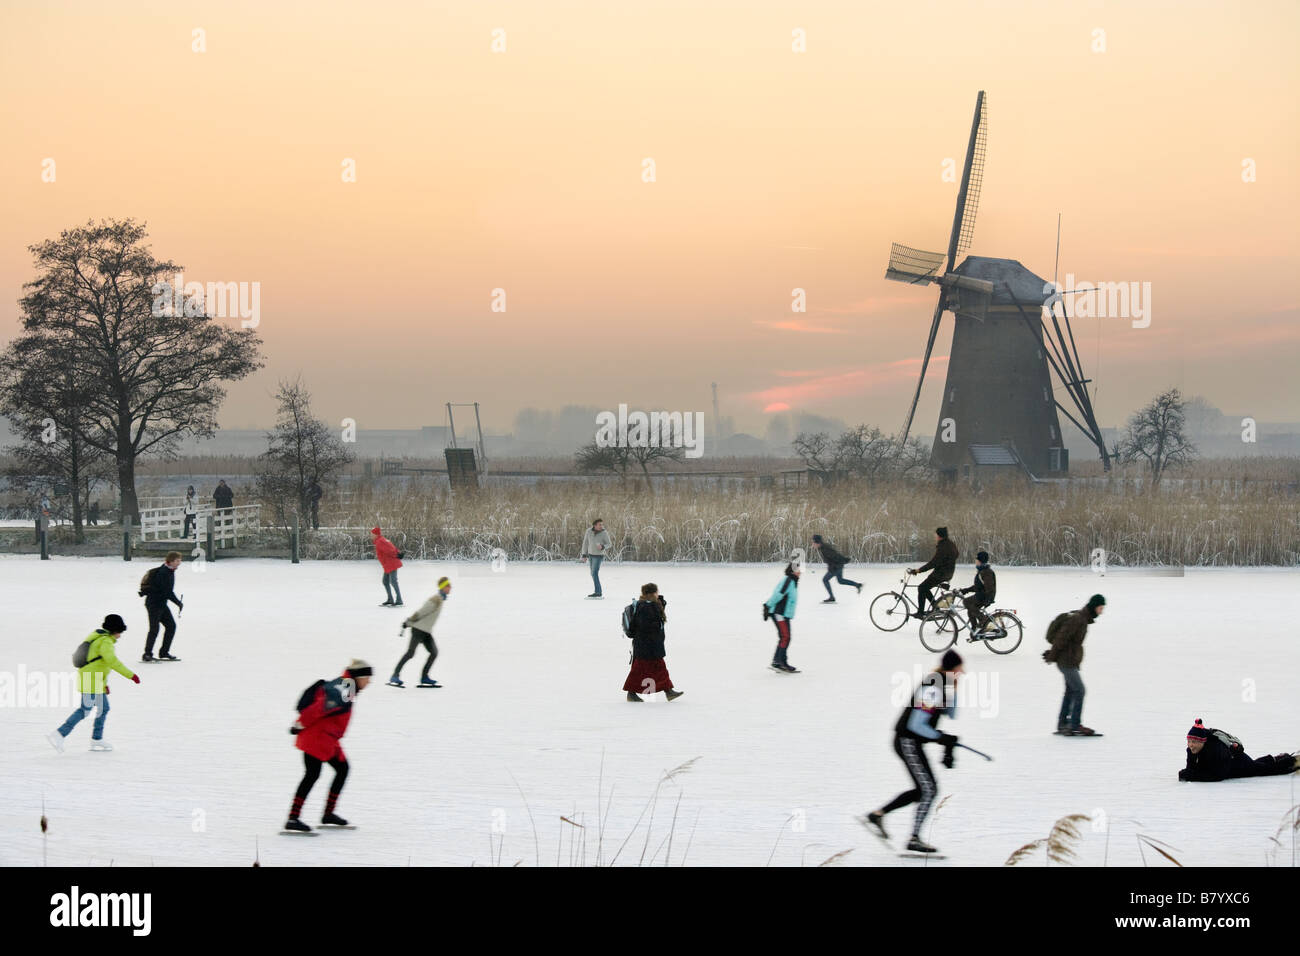 Ice skaters and even cyclists on natural ice in front of a windmill at Kinderdijk Holland, The Netherlands. At sunset. - Stock Image